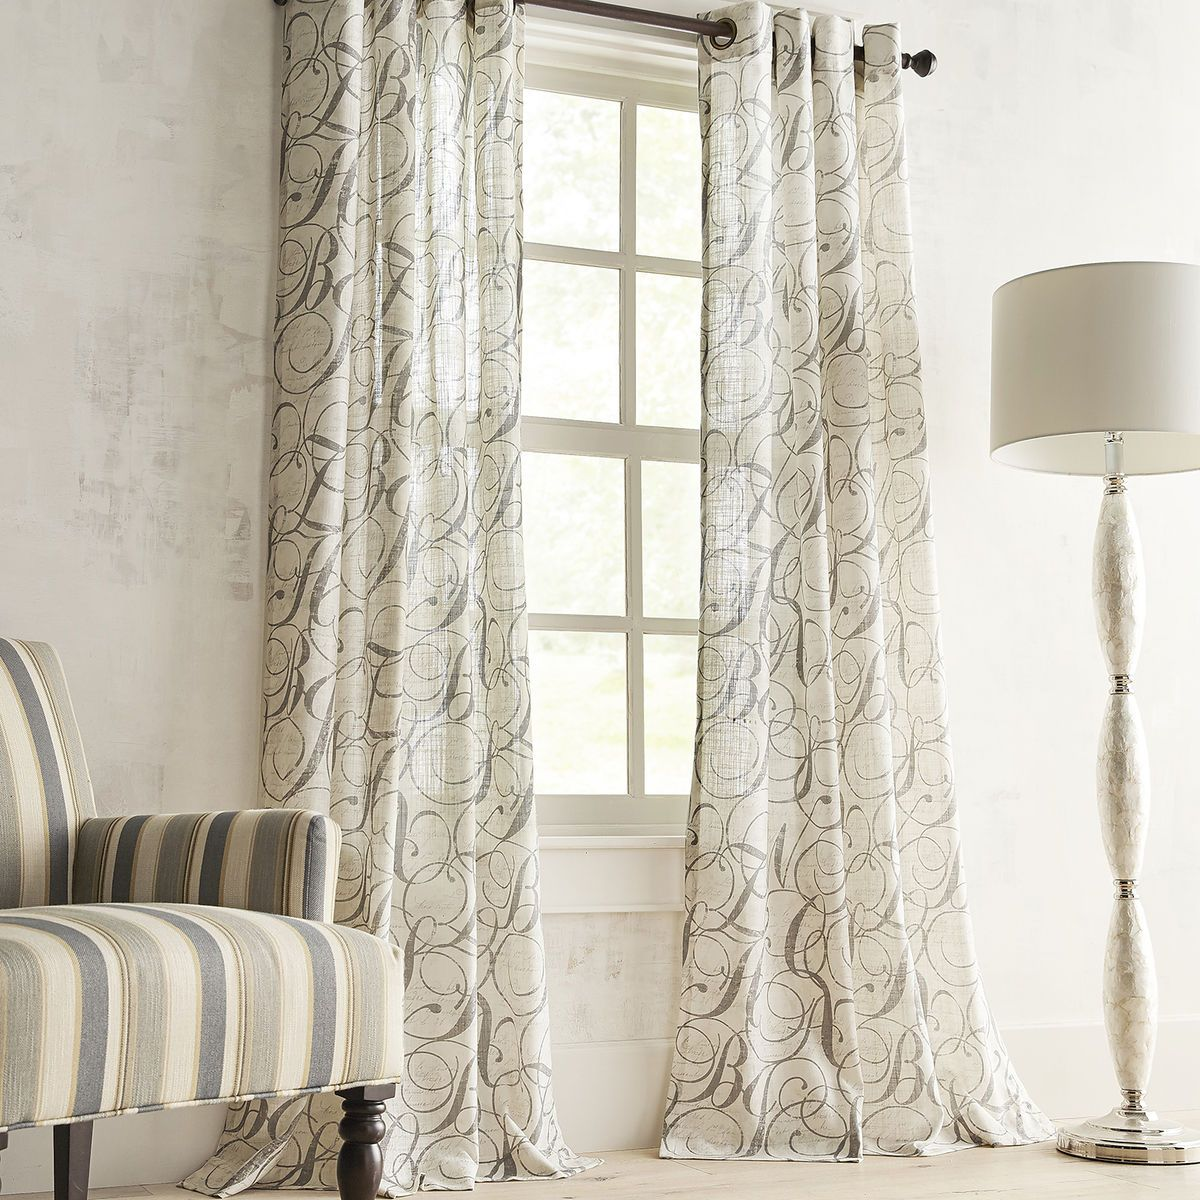 pier 1 imports home office. Gray Calligraphy Curtain | Pier 1 Imports Home Office